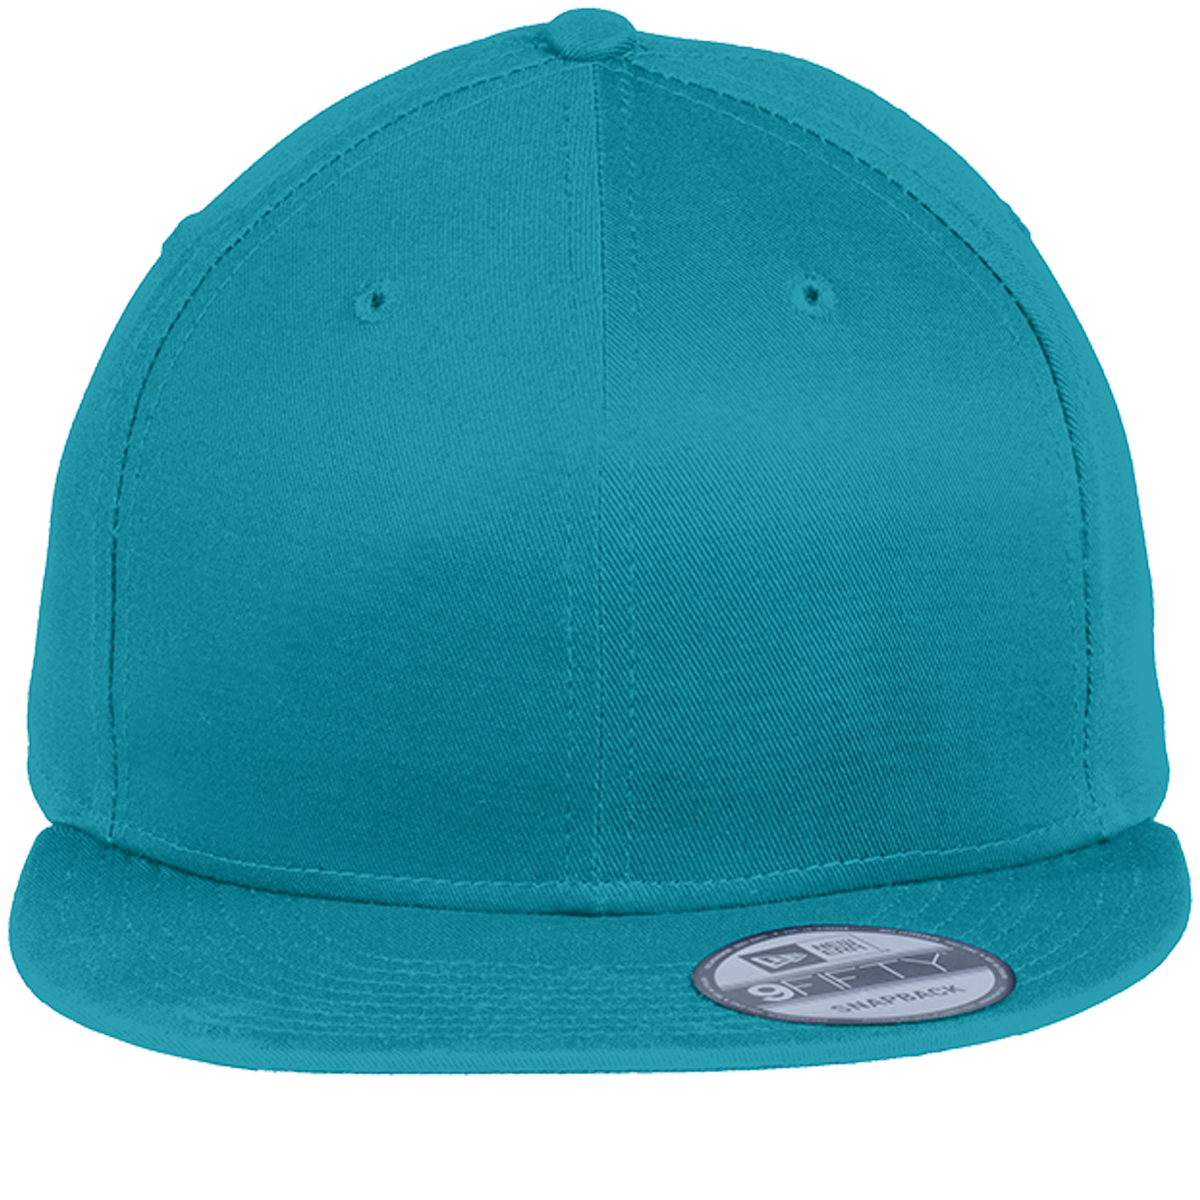 New Era Snapback Cap (Embroidered) - Embroidery front